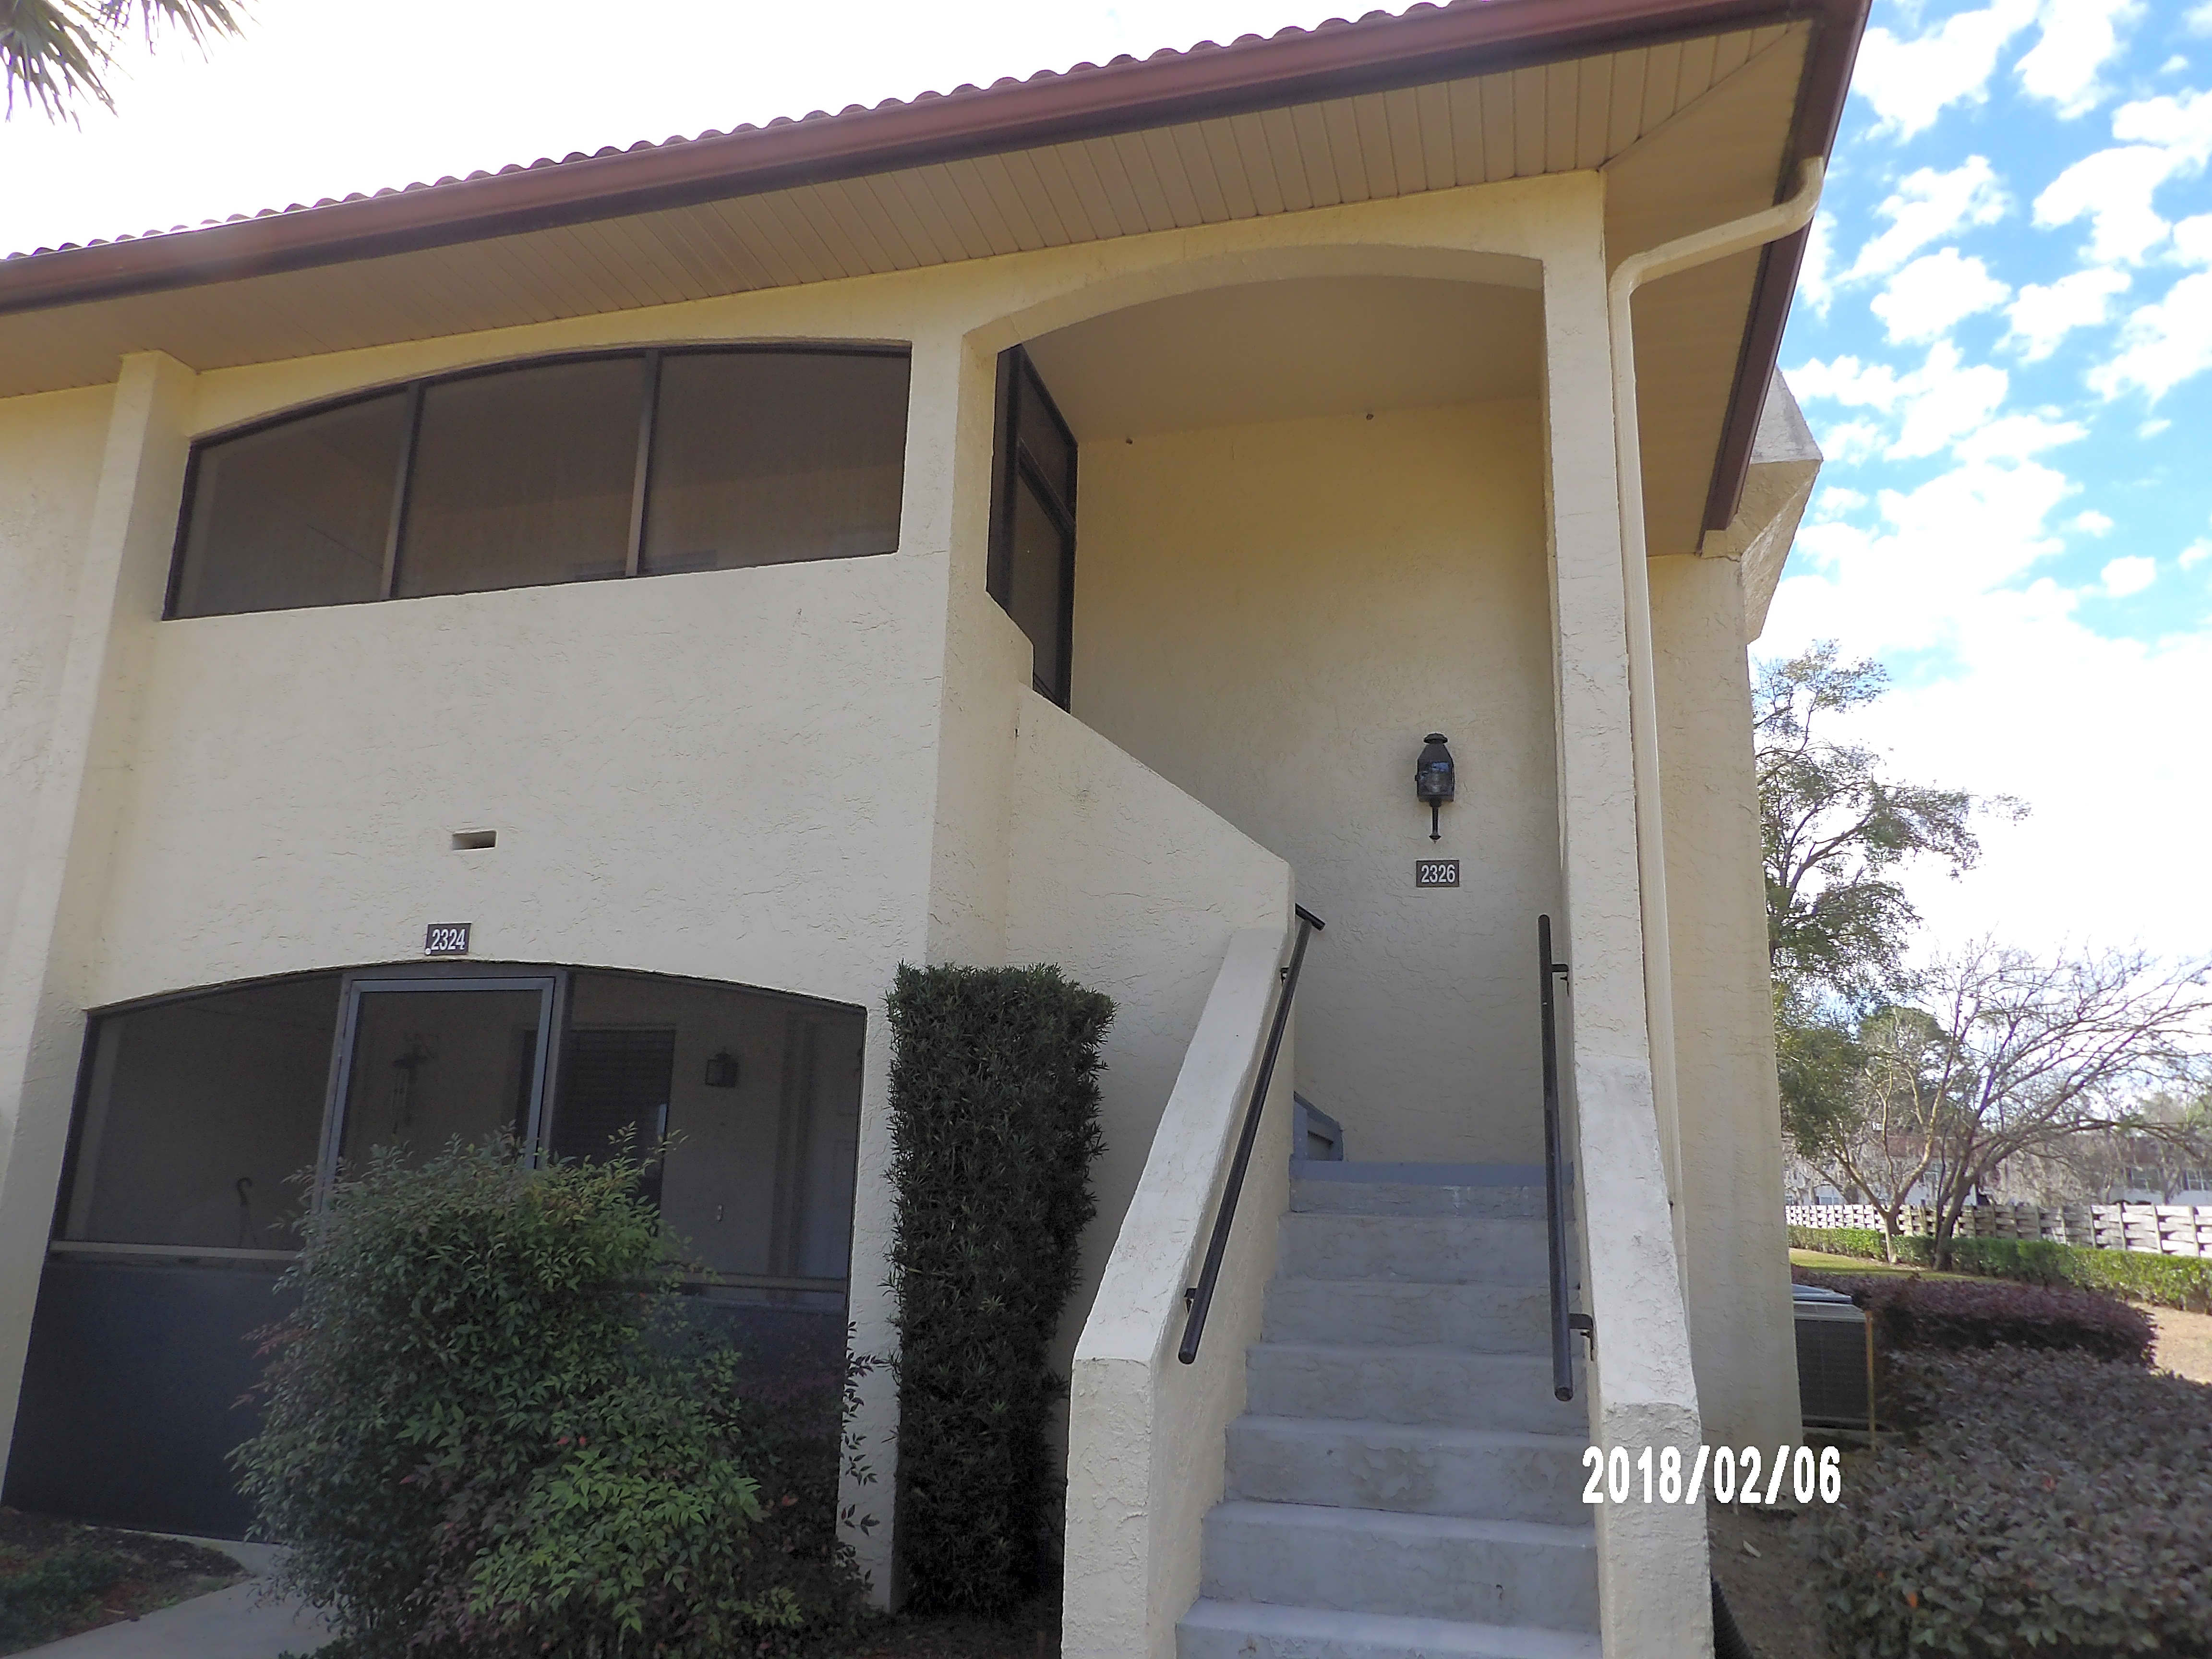 2 2 With A Fireplace And Pool Apartments Inverness Fl 34453